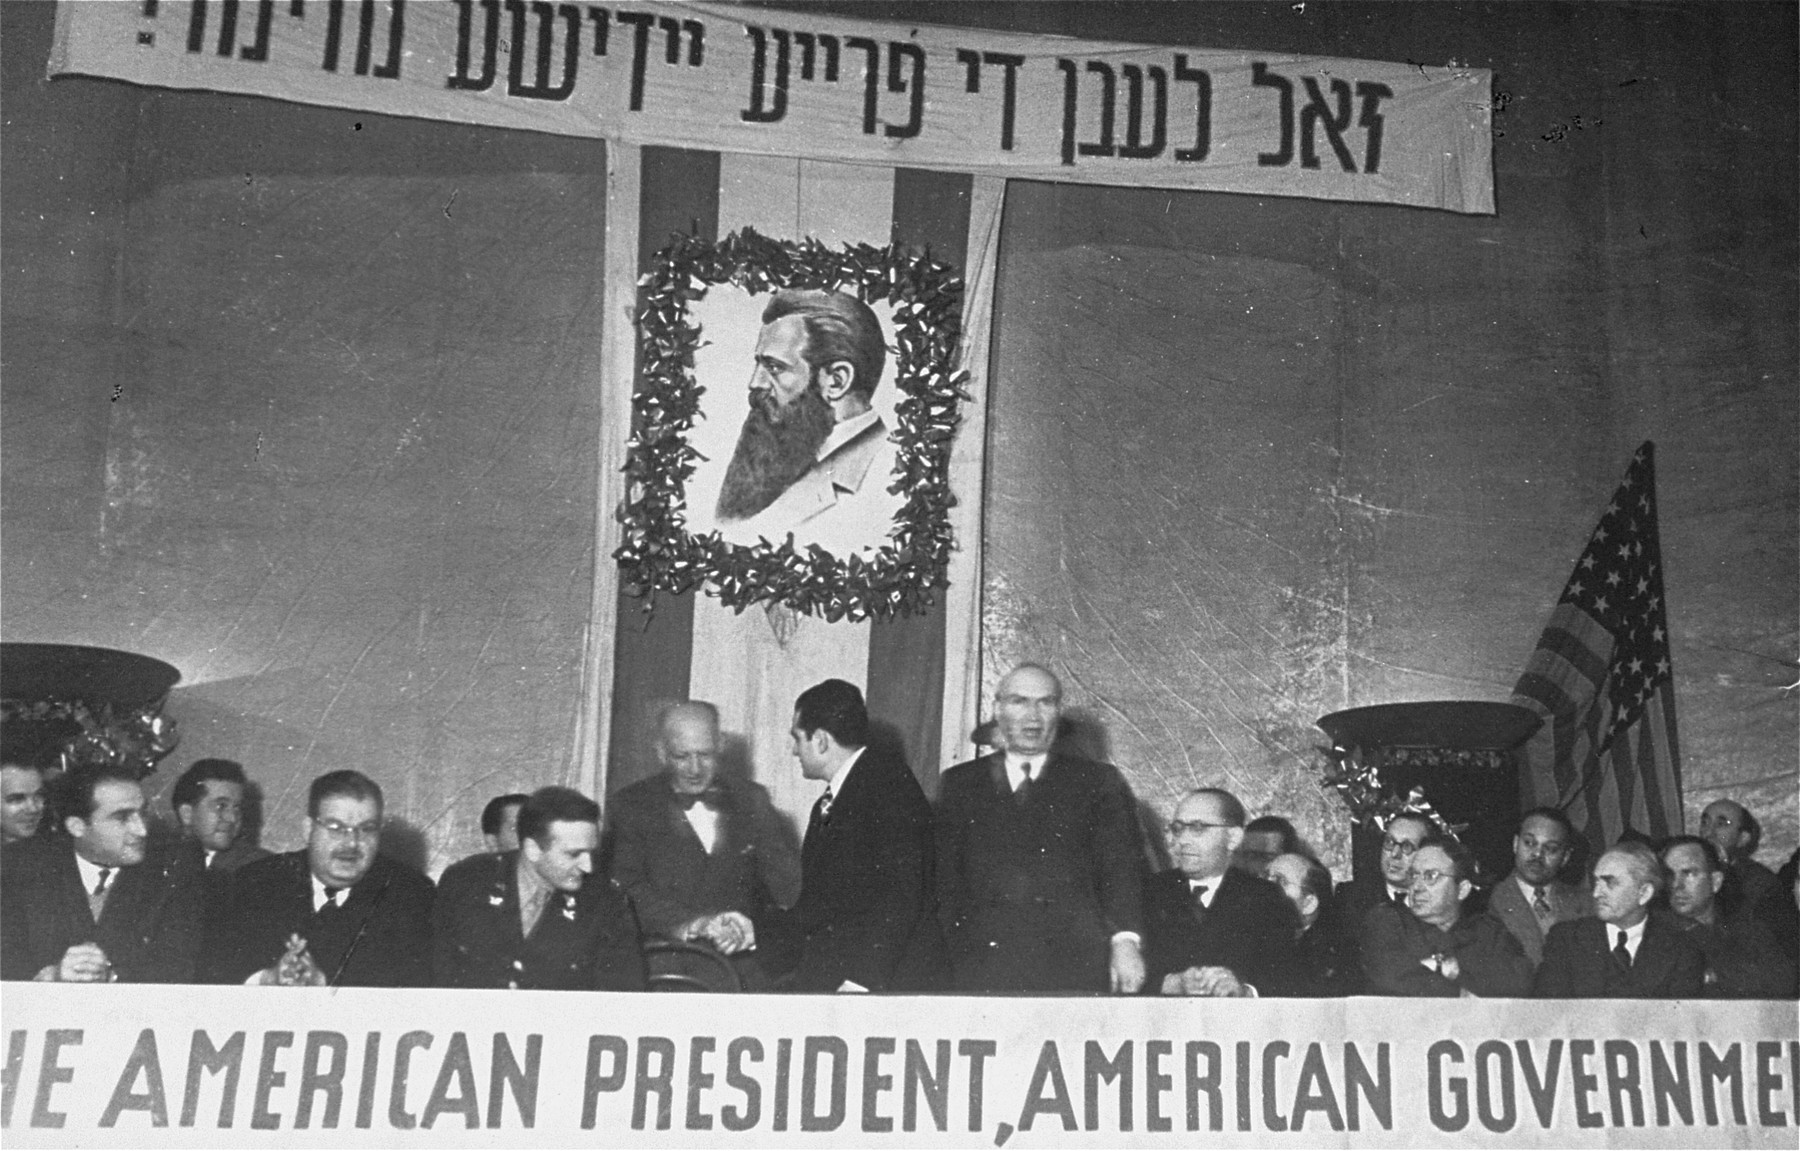 Members of the Central Committee of Liberated Jews in the U.S. Zone of Germany attend a meeting in the Prinzregenten Theater celebrating the partition of Palestine.    David Treger, chairman of the committee, stands in the center, facing the camera.